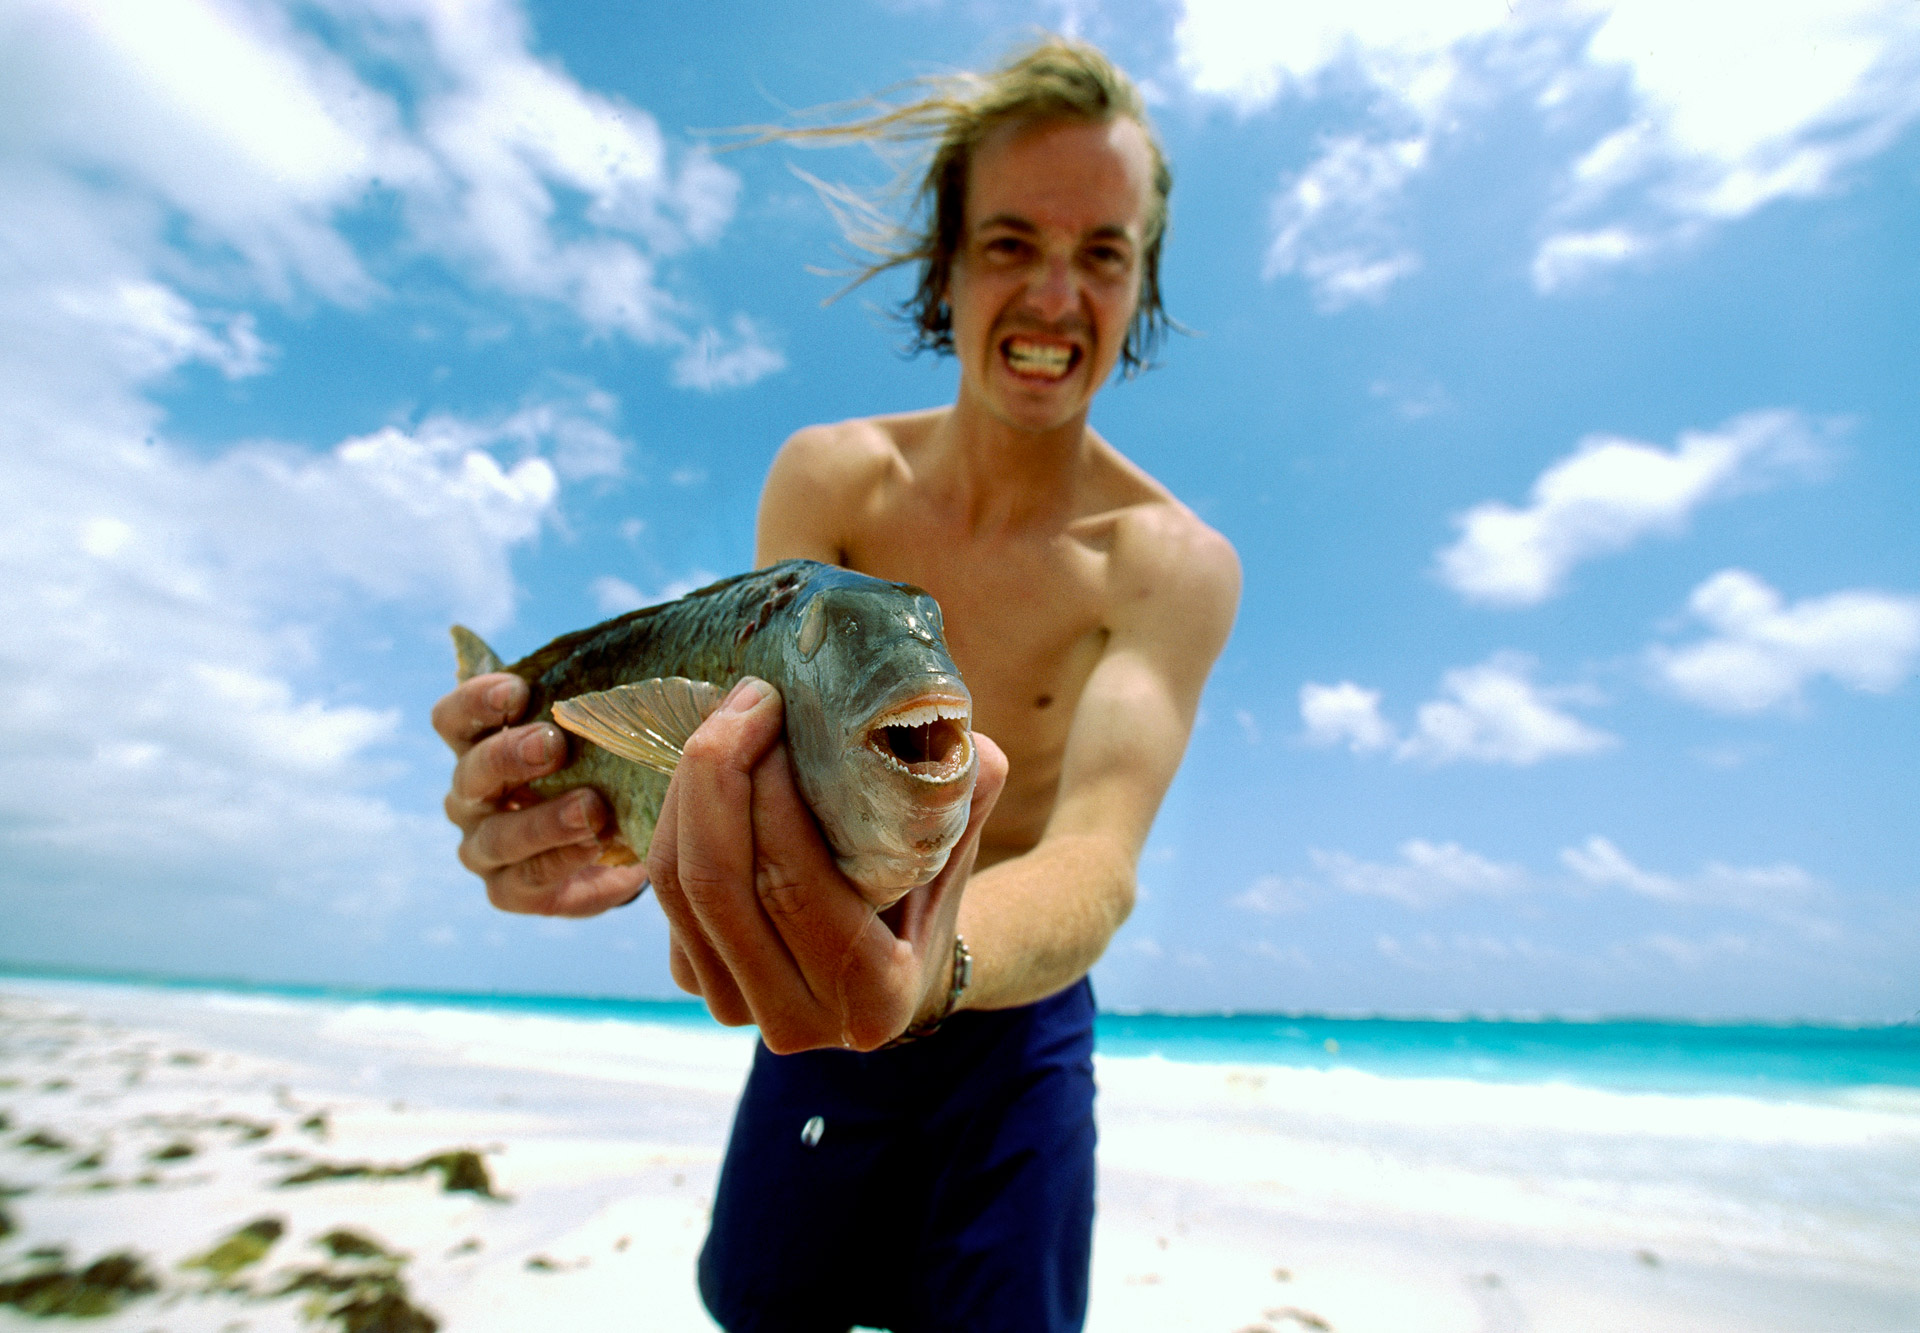 Man showing the teeth of a parrot fish in Tulum, Mexico